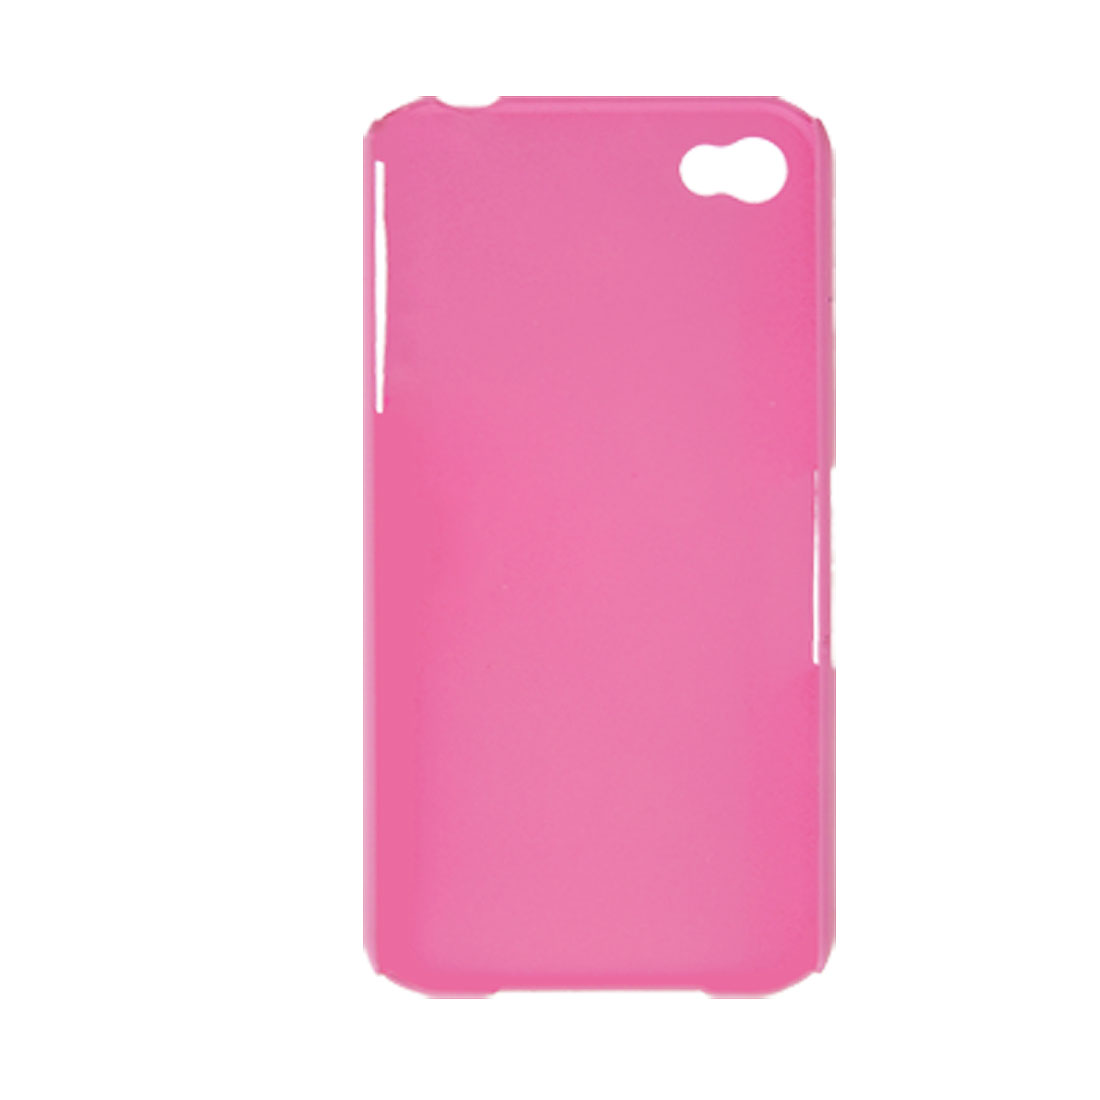 Pink Rubberized Hard Plastic Case for iPhone 4 4G